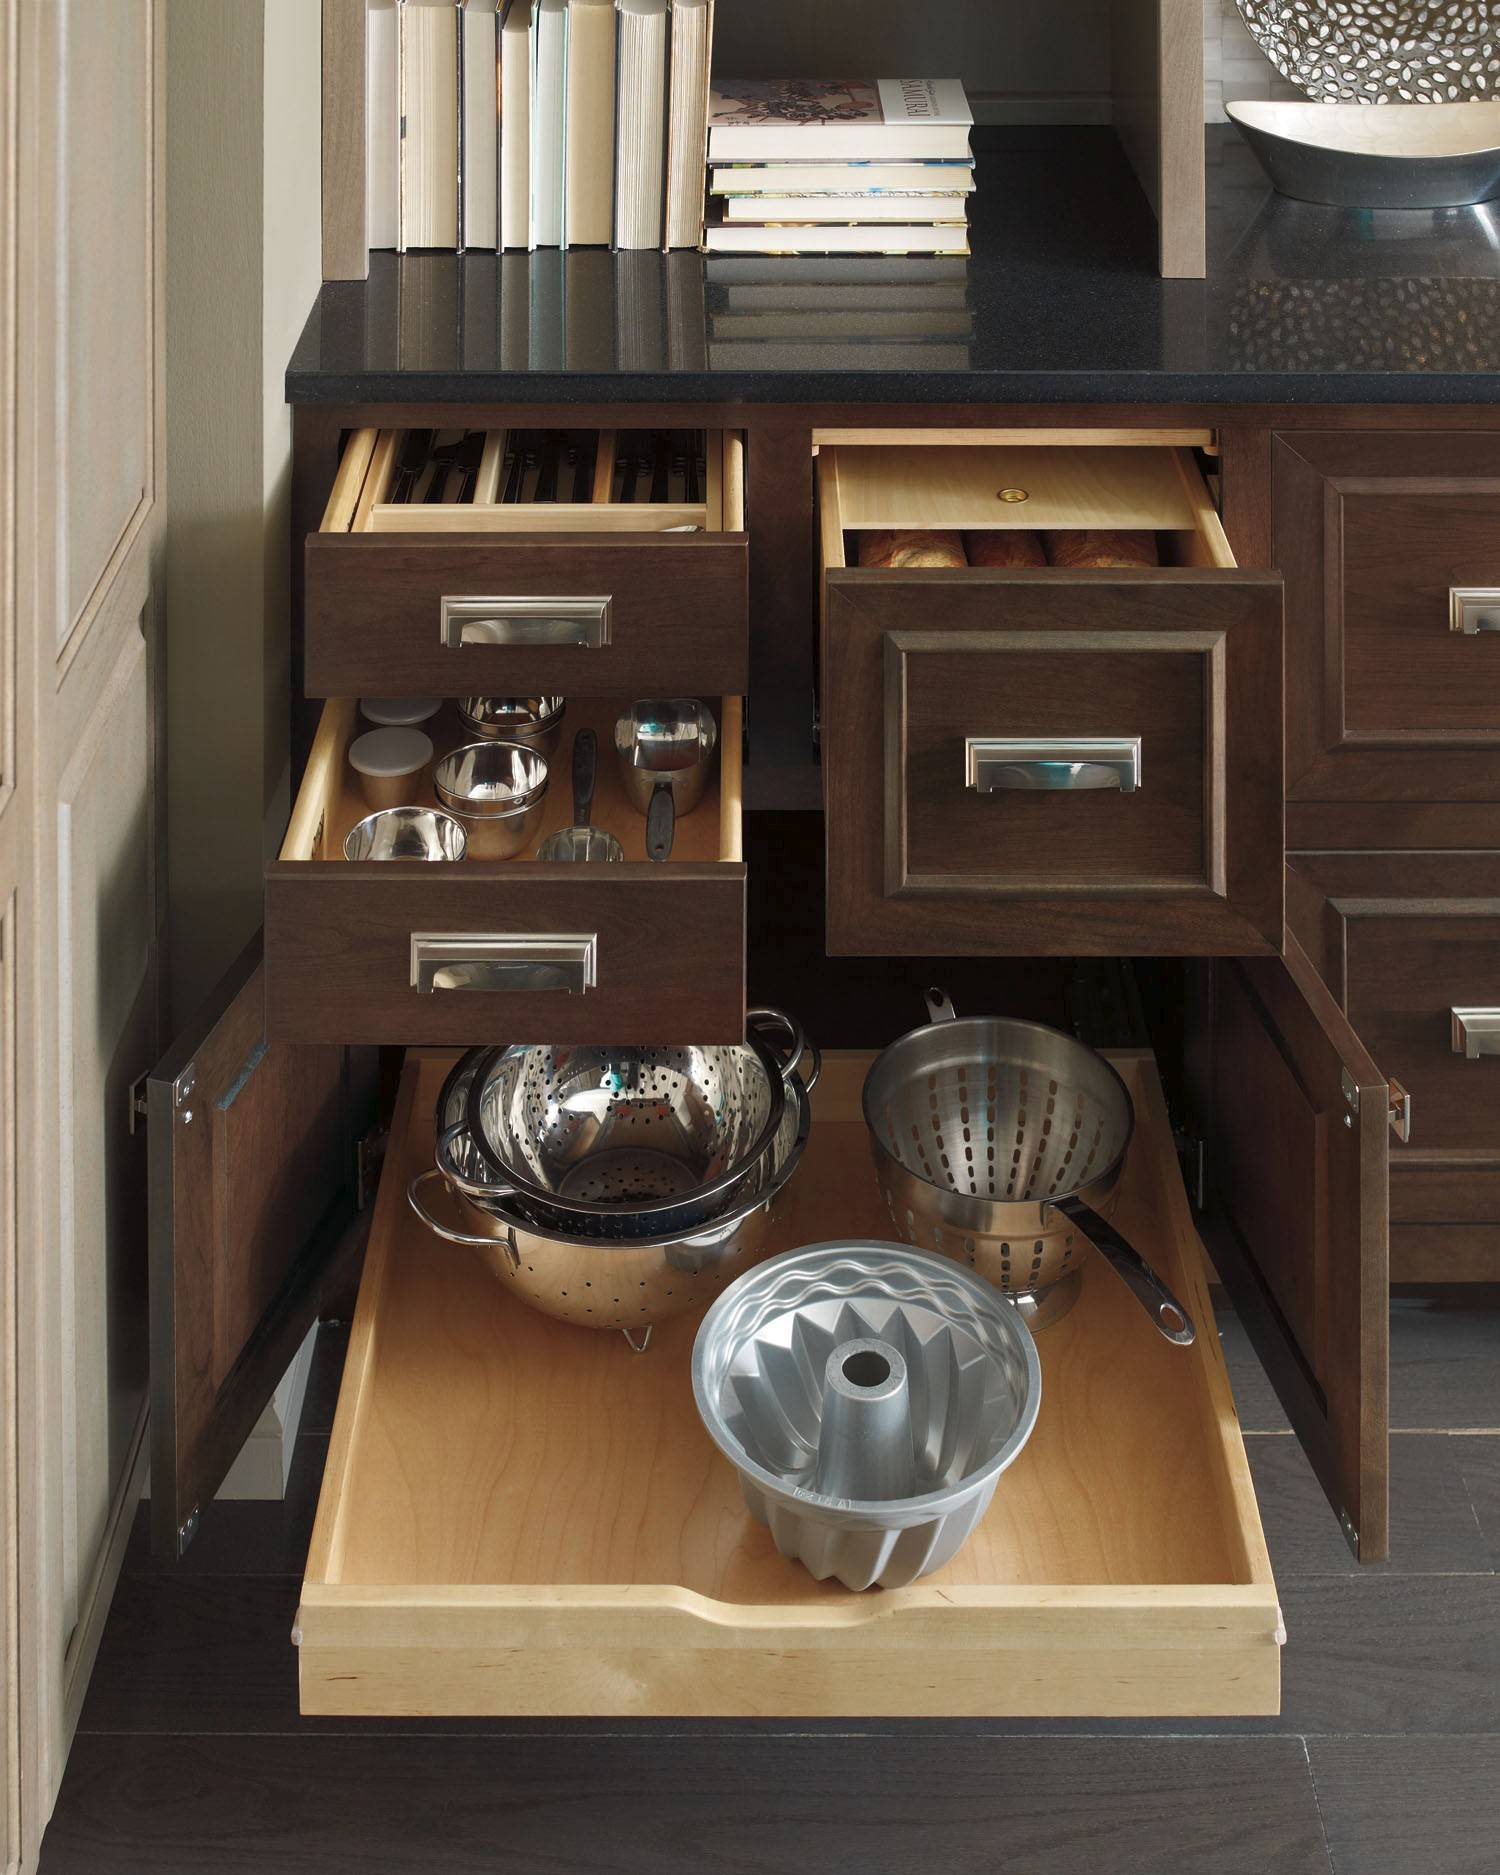 Full-access cabinetry makes it easier to access large items like pots and pans.